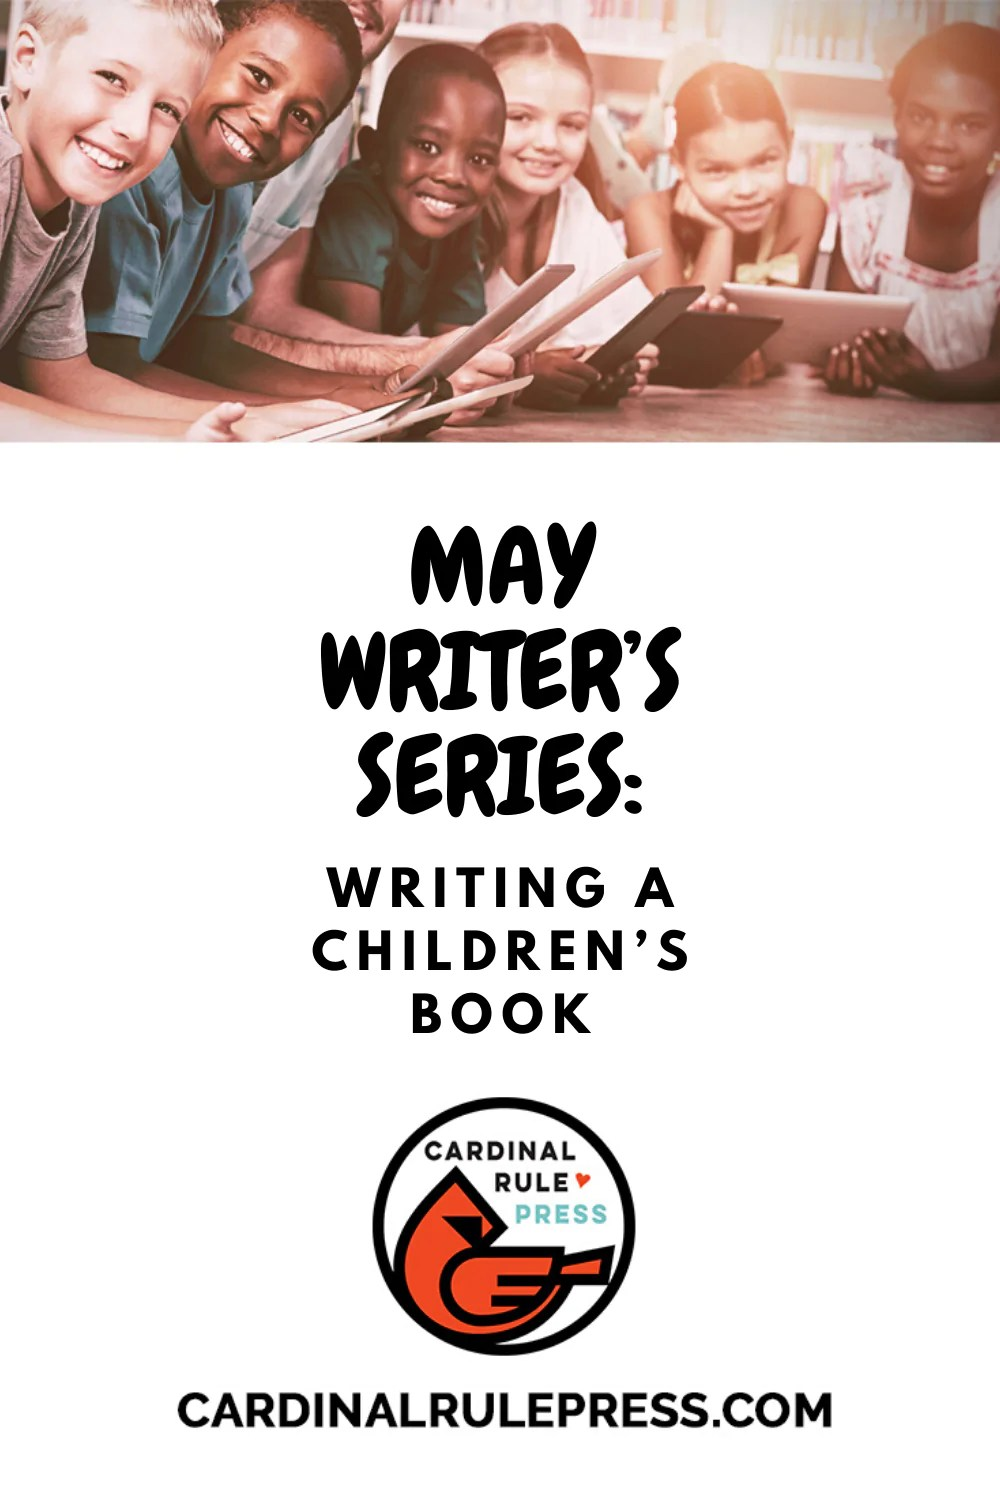 May Writer's Series: Writing a Children's Book